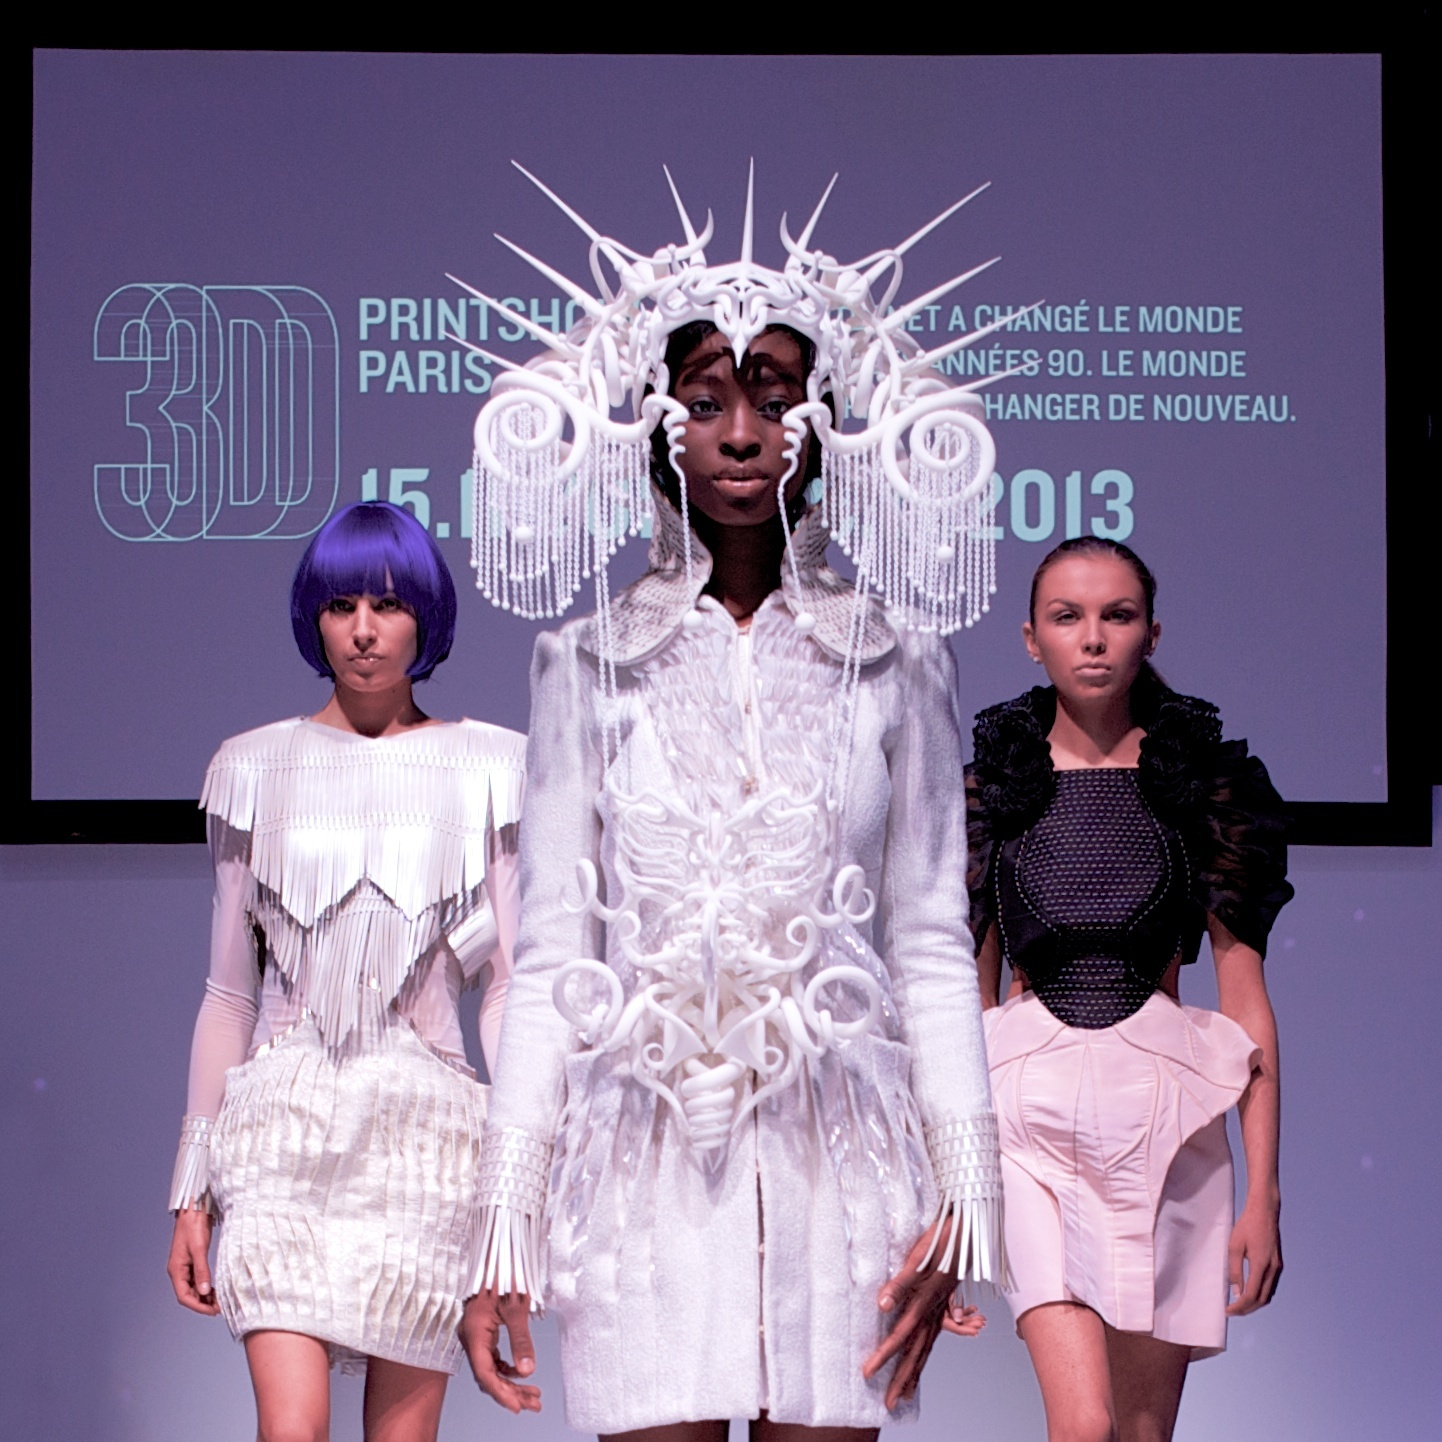 The additively manufactured headpiece worn by the center model, designed by Joshua Harker and manufactured by EOS, will be featured in the New York 3D Printshow in February 2014. (Source: 3D Printshow)